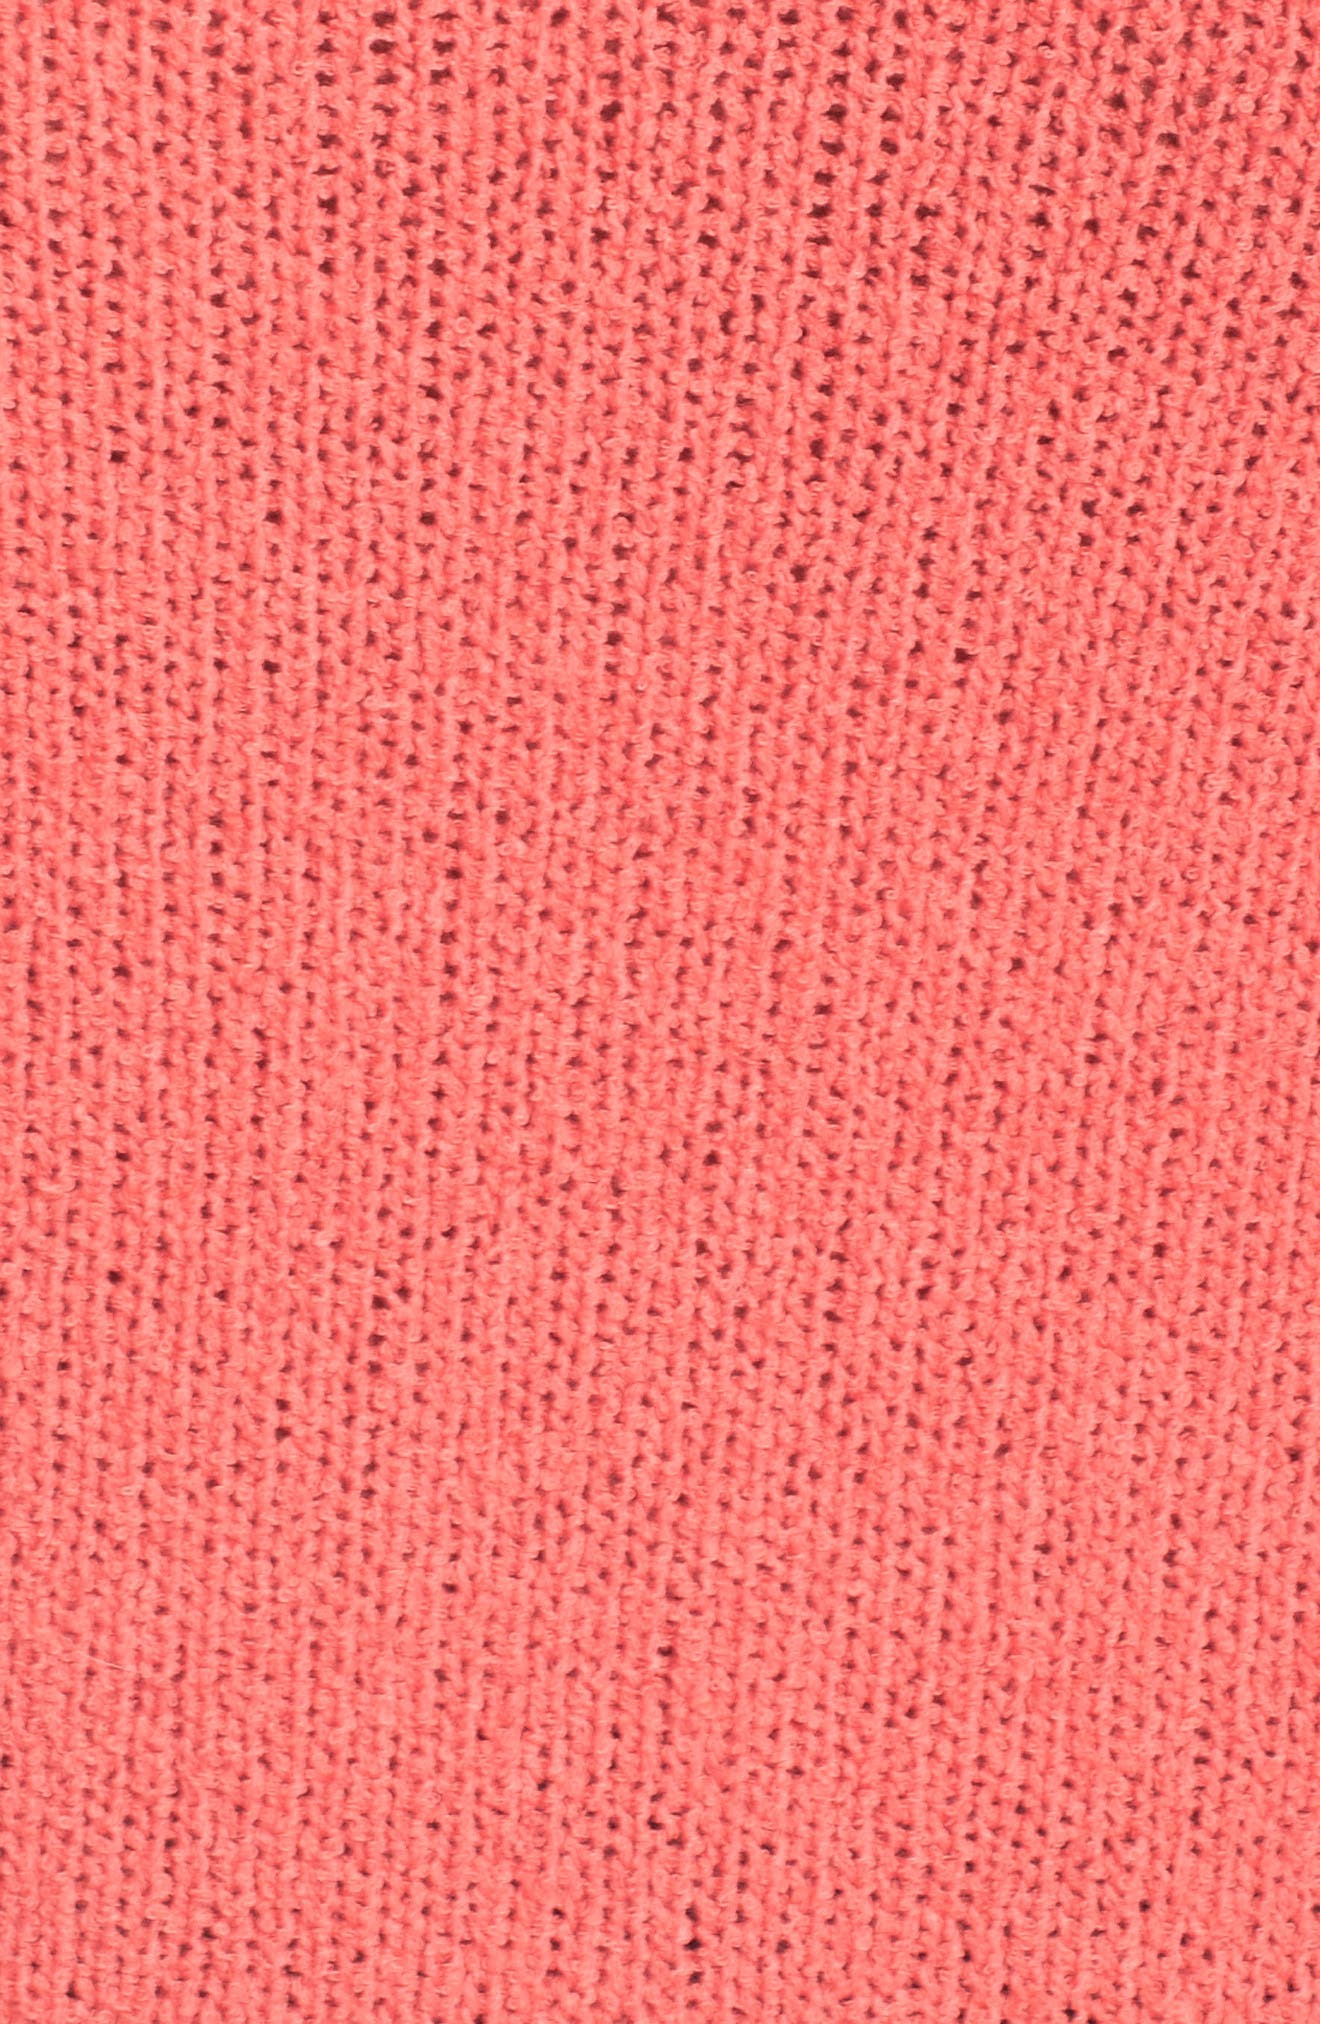 Relaxed Crewneck Sweater,                             Alternate thumbnail 6, color,                             Coral Sea